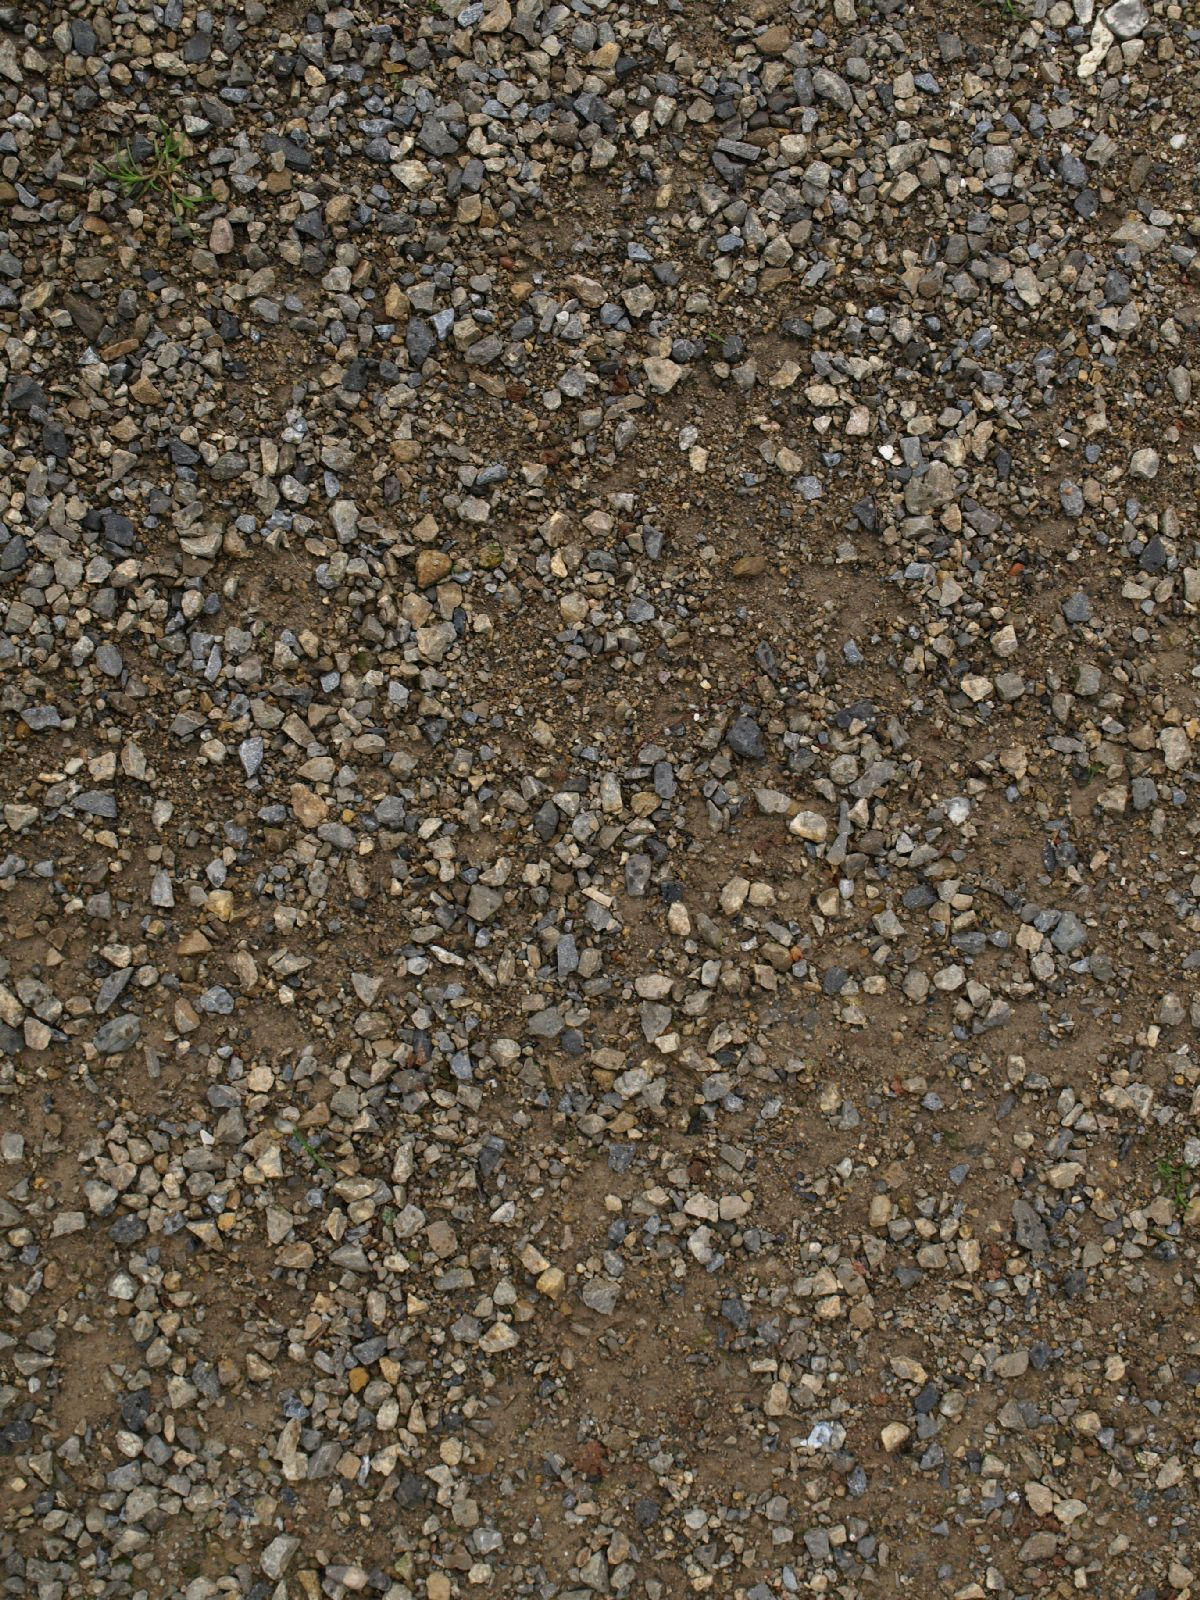 Ground-Nature_Texture_A_P4131069